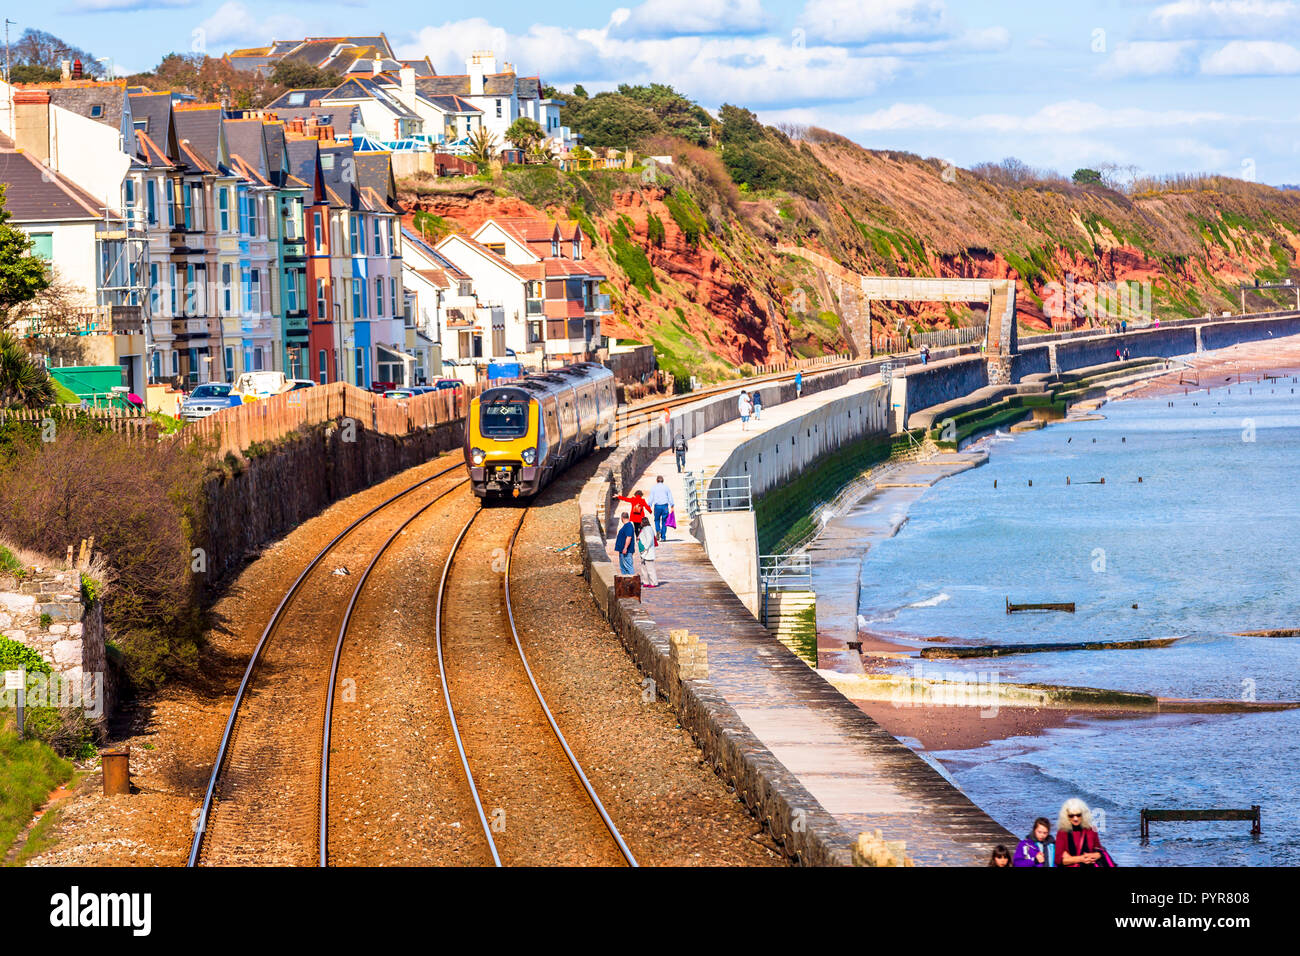 The railway trains at Dawlish ruining again after the storm damage of 2014. Stock Photo